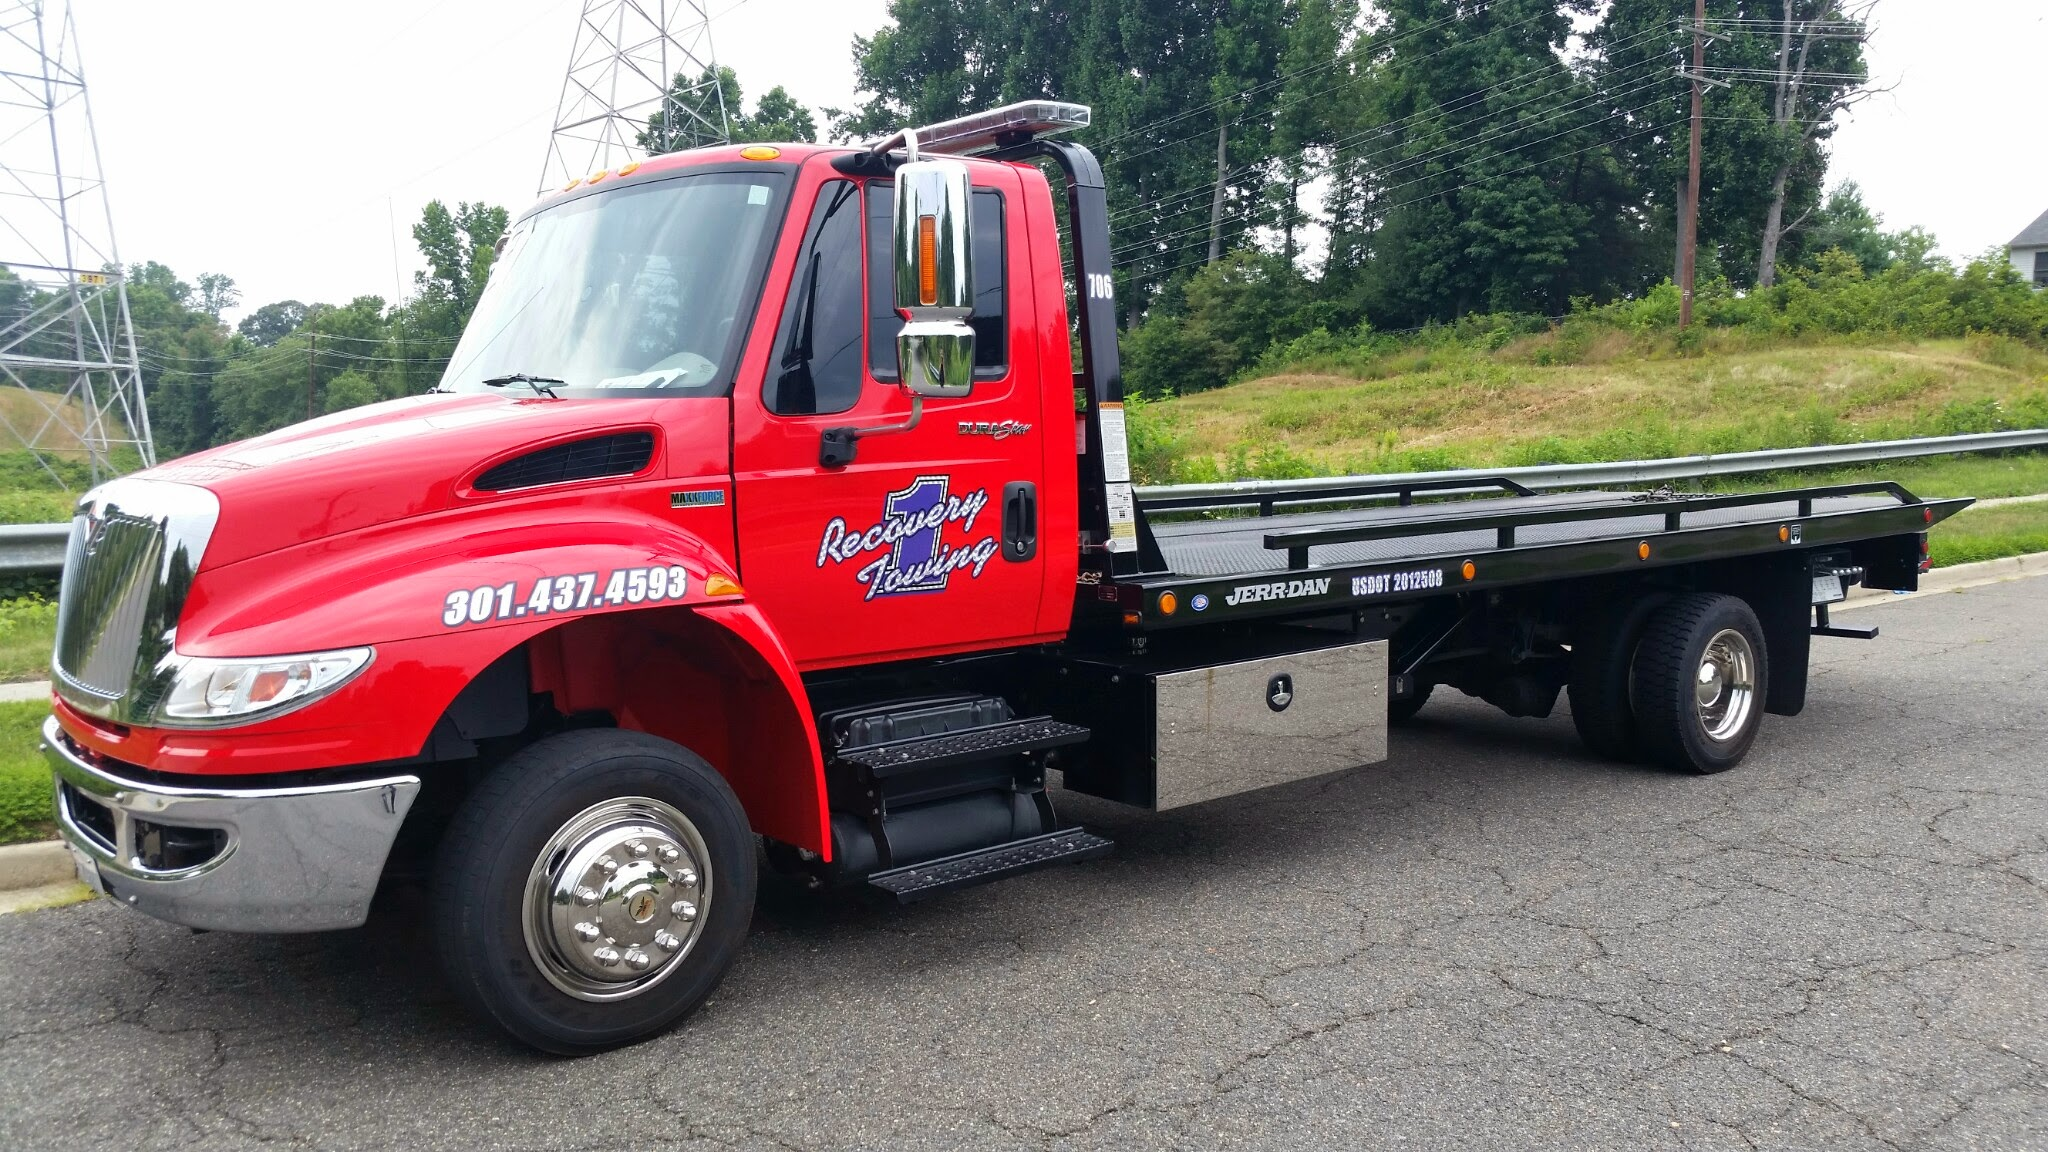 Recovery 1 Towing, LLC Towing.com Profile Banner